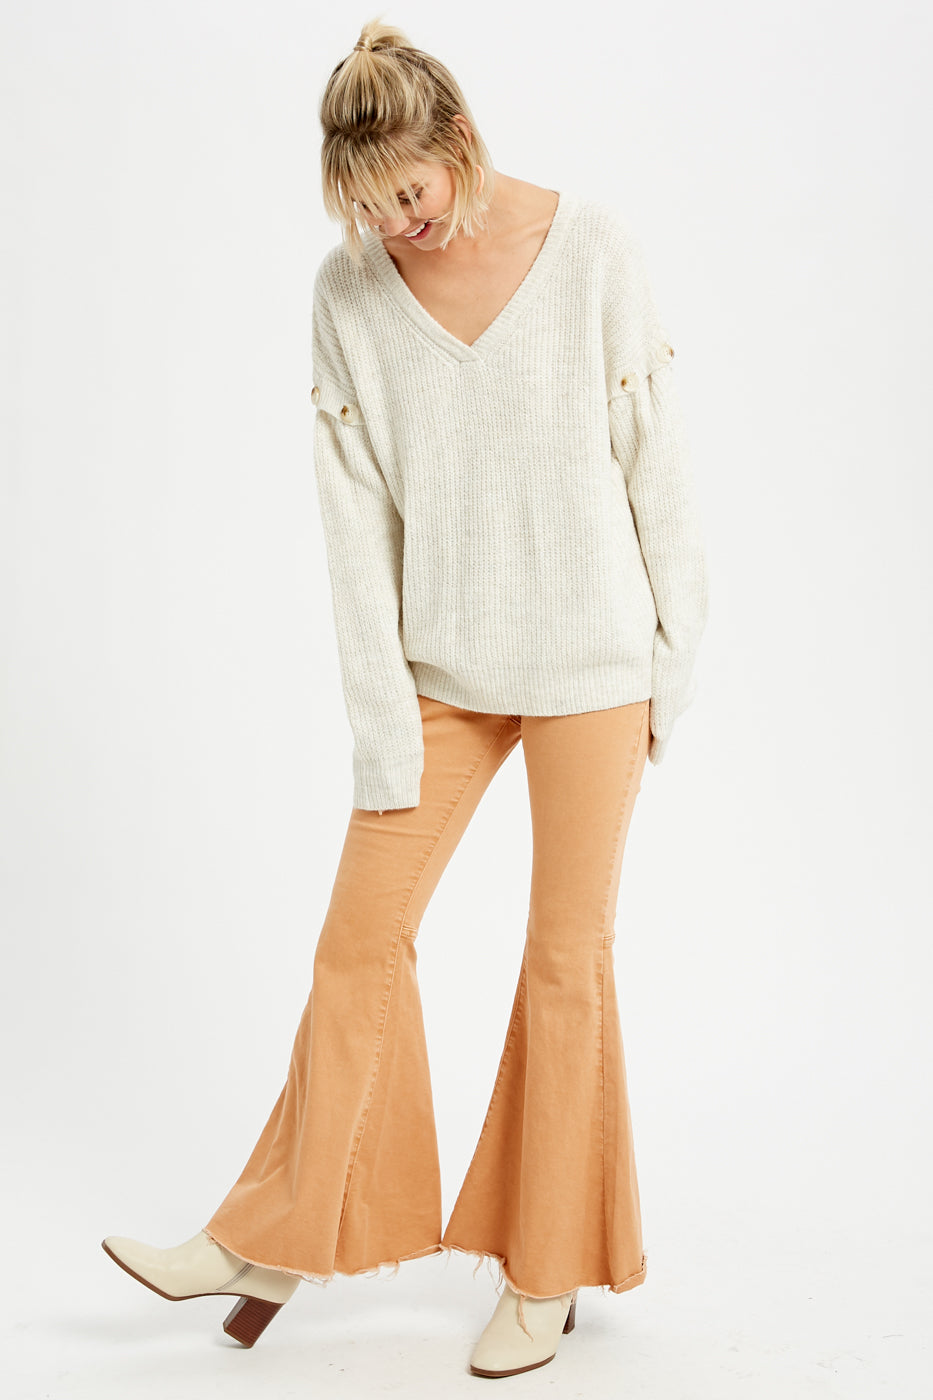 TWO TONE BUTTON ARMHOLE PULLOVER KNIT SWEATER (Oatmeal)